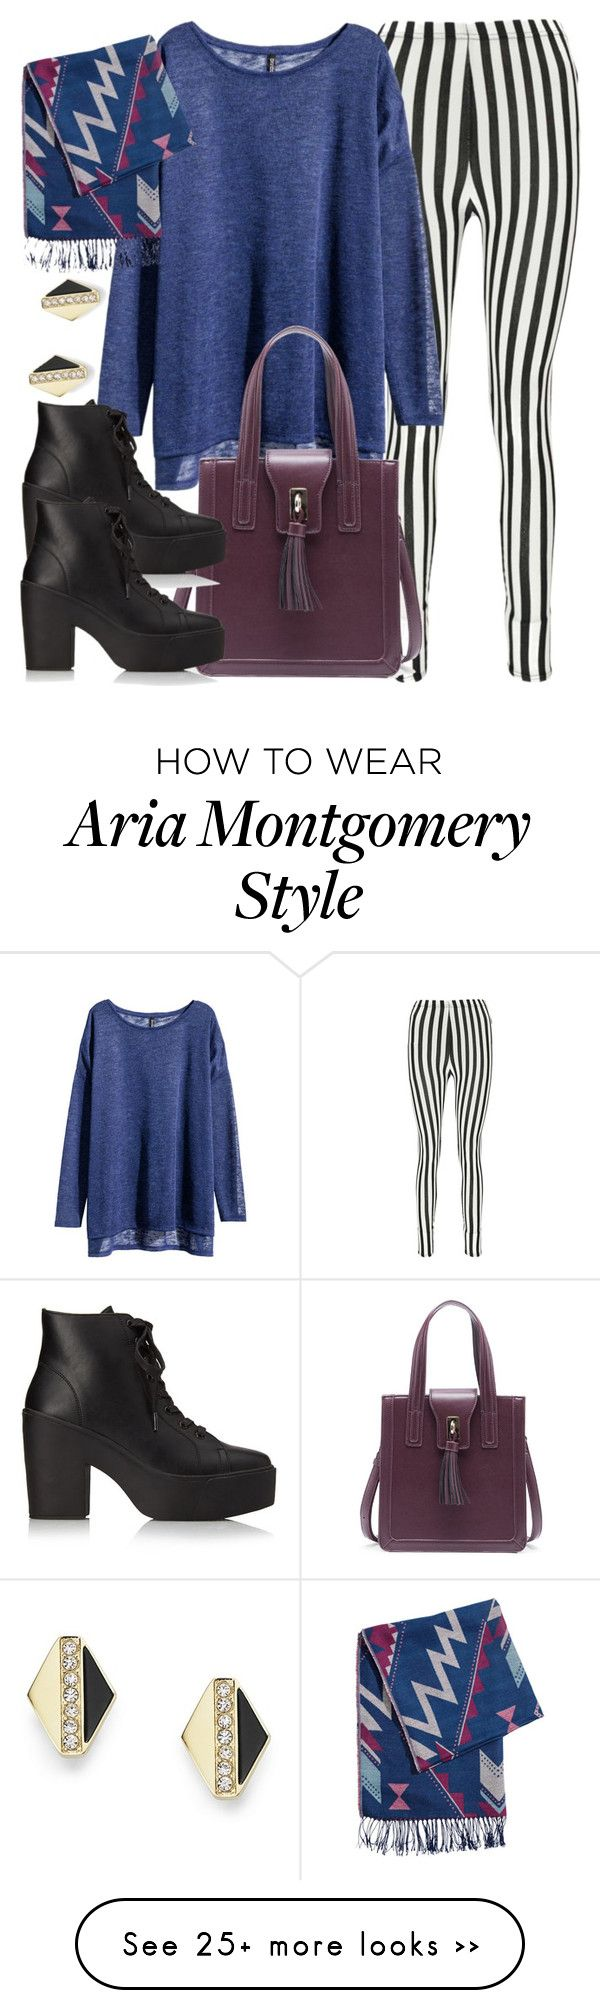 """Aria Montgomery inspired outfit"" by liarsstyle on Polyvore featuring Boohoo, H&M, Sole Society, Forever 21 and FOSSIL"